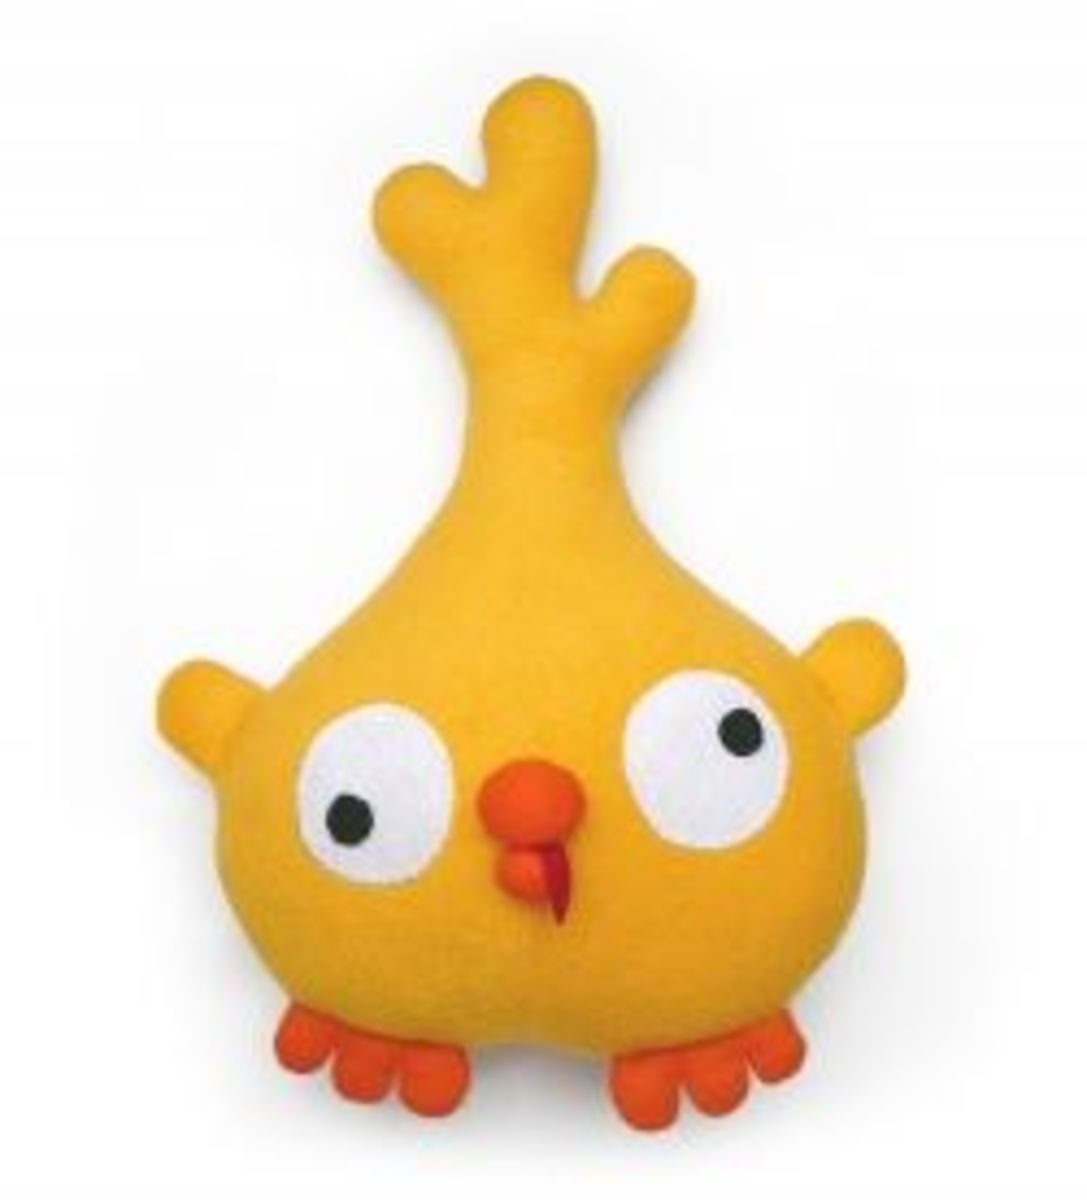 Poloko the chick toy pattern